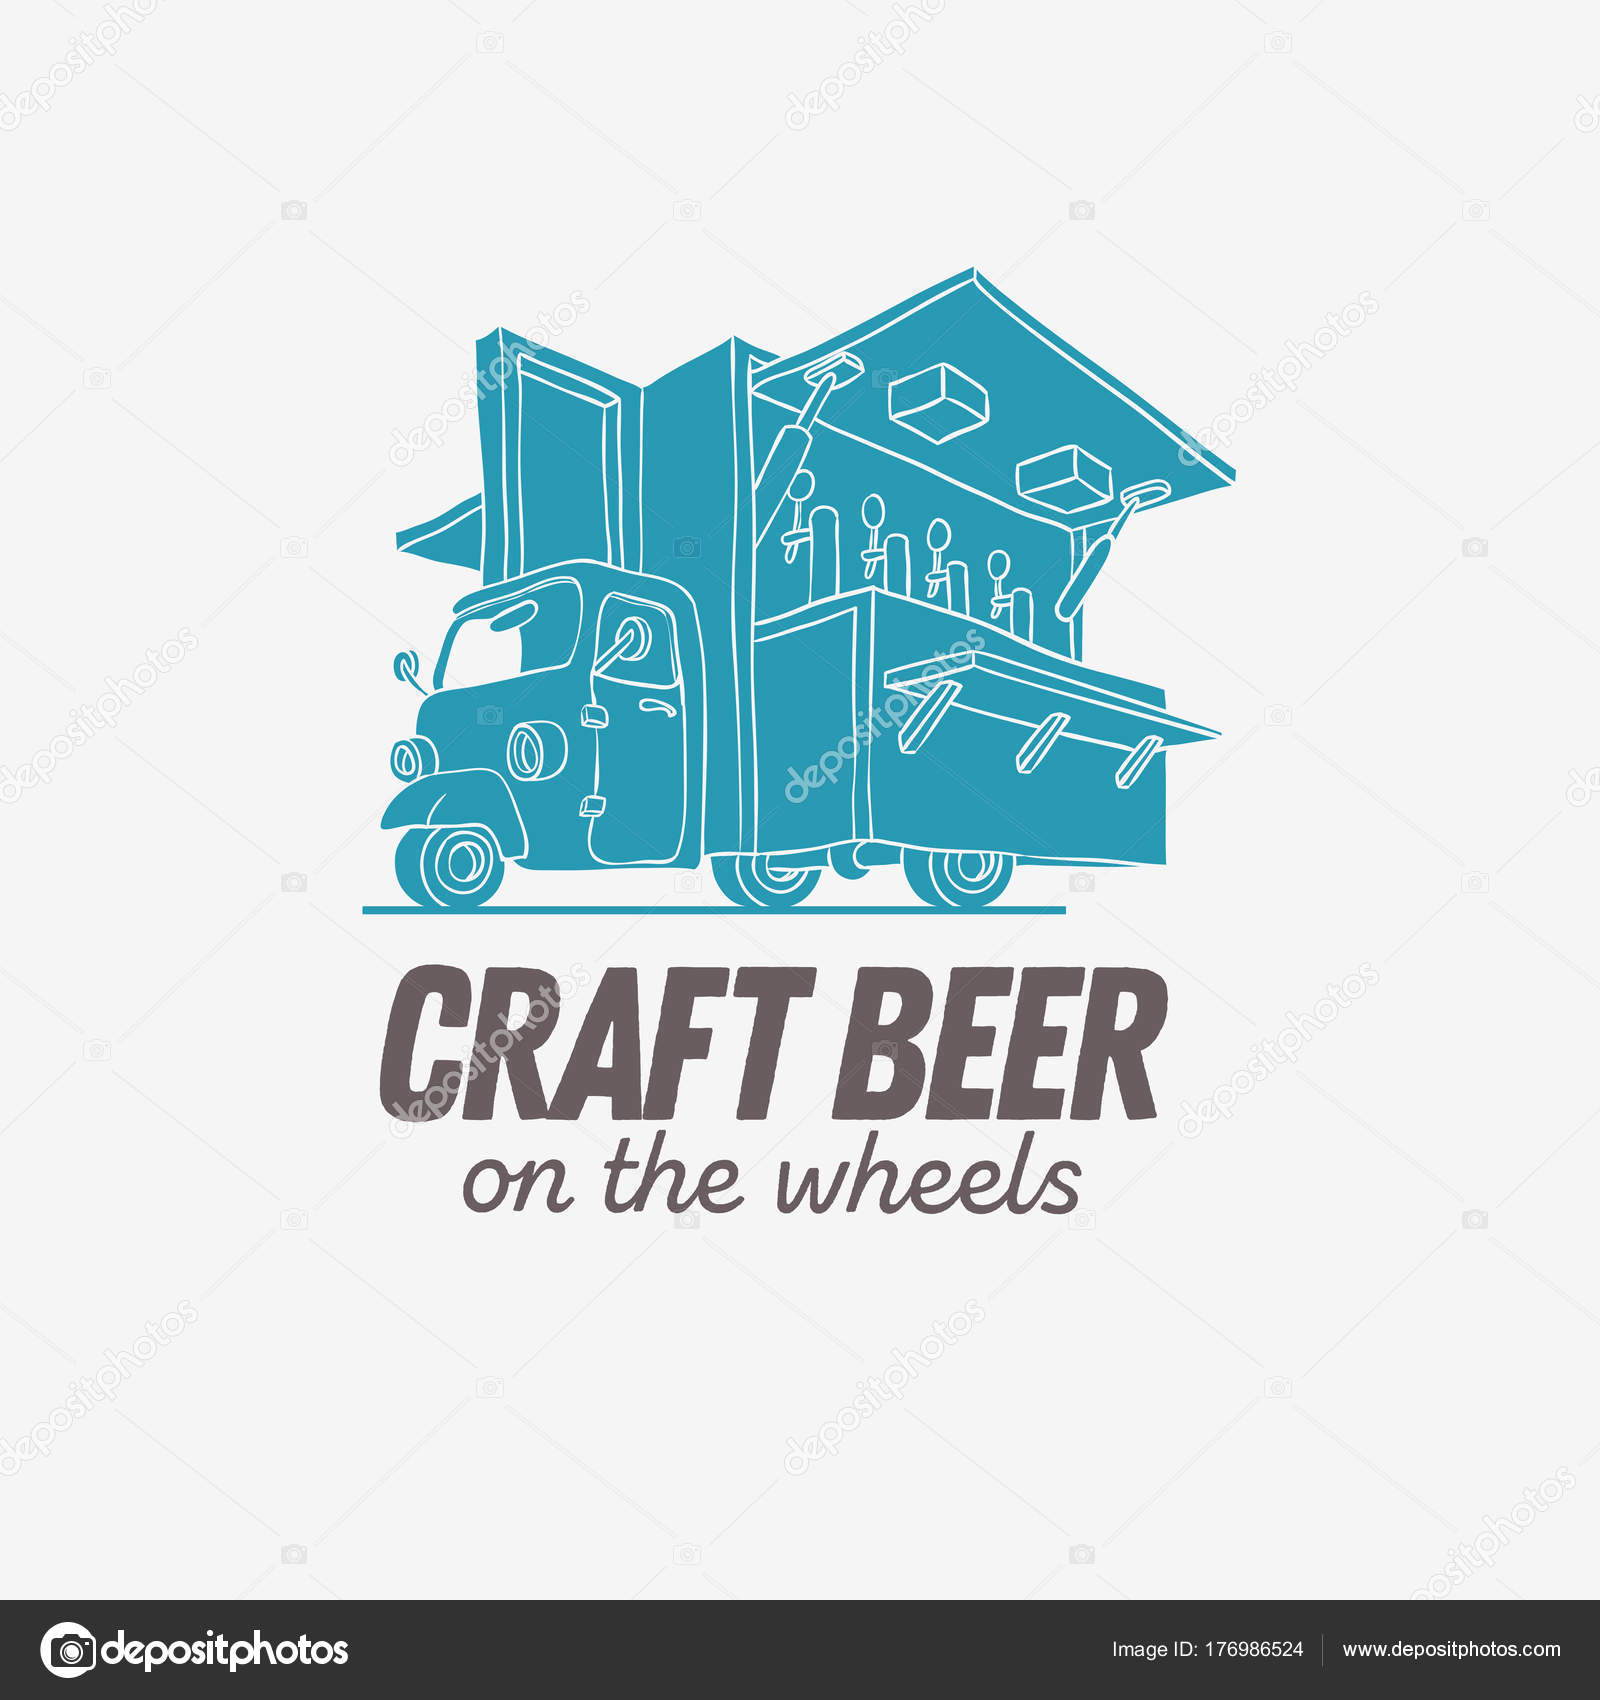 Mobile Craft Beer Pop Up Vehicle For Catering And Street Selling